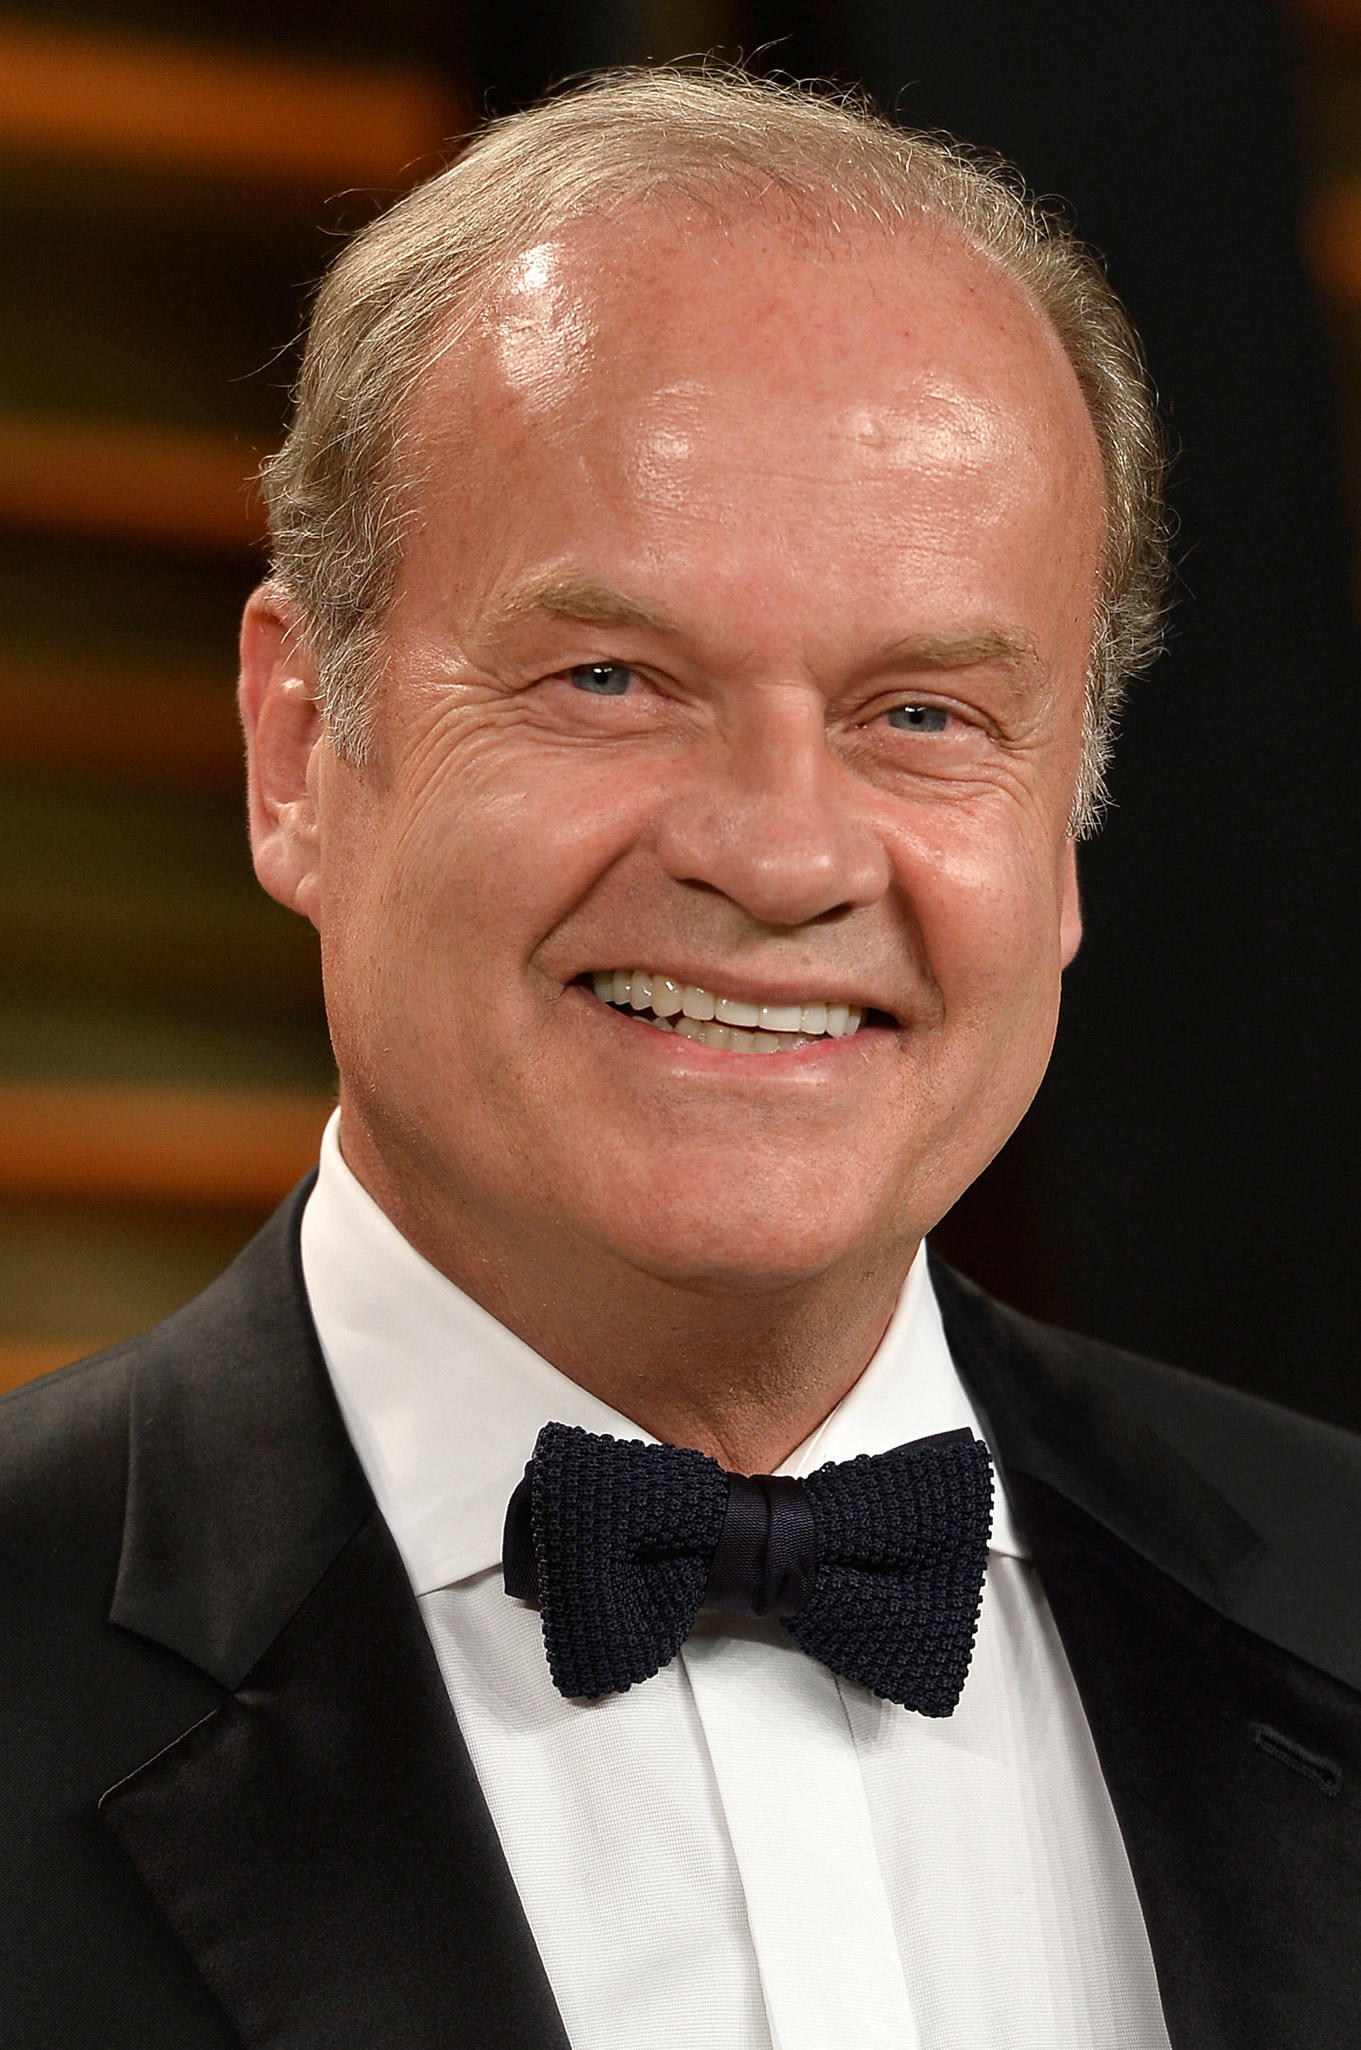 Kelsey Grammer at the 2014 Vanity Fair Oscar Party hosted by Graydon Carter in West Hollywood, CA.